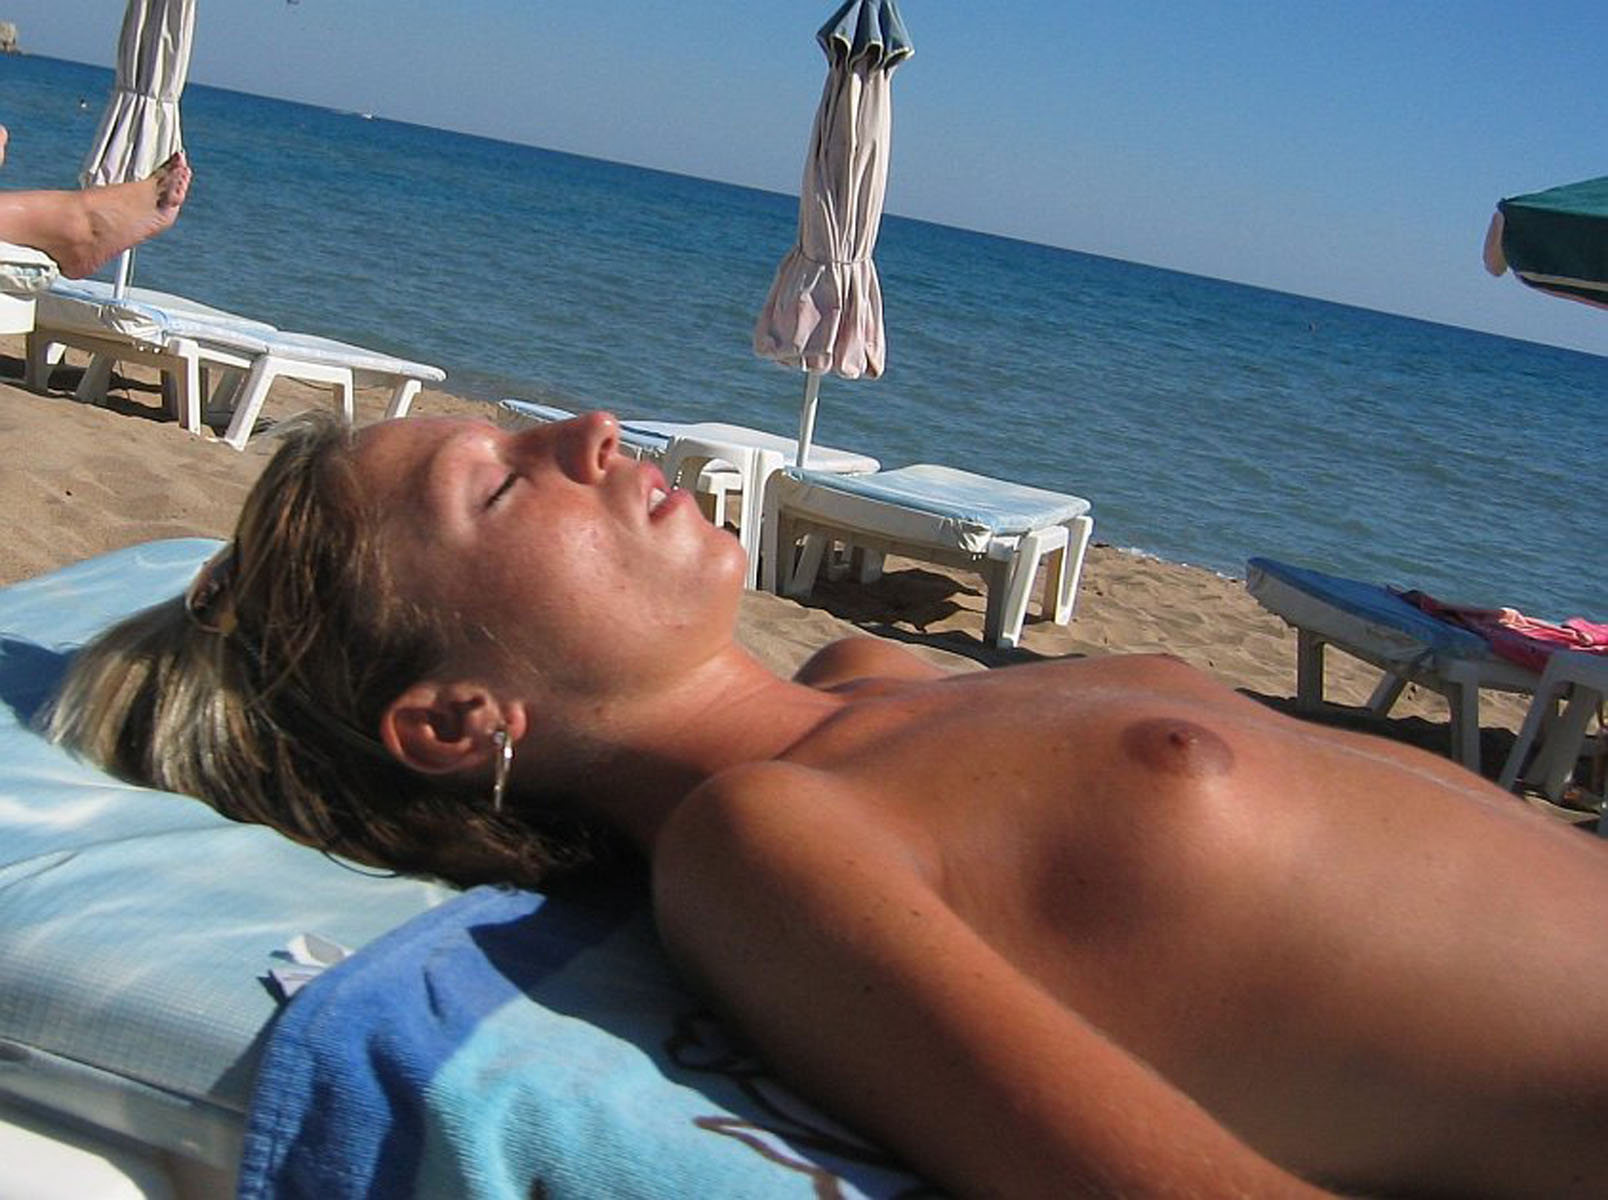 Tanning blond beauty exposed topless